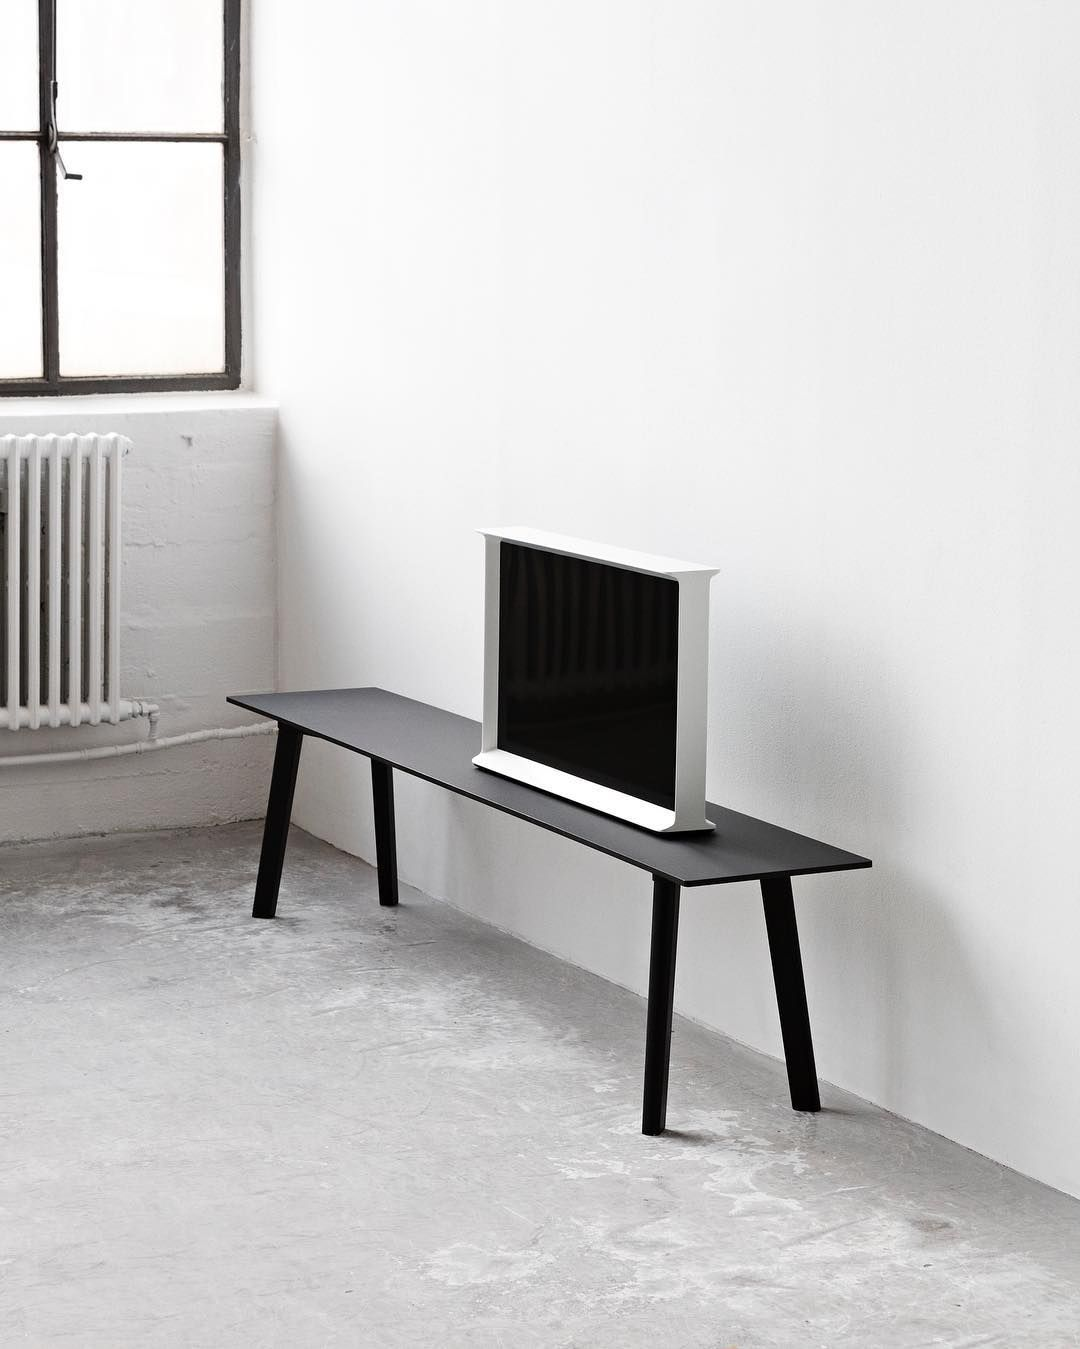 The Matching Bench For The Table: By HAY Is The Perfect Match For The Table  Ofthe Copenhague Deux Collection By HAY.